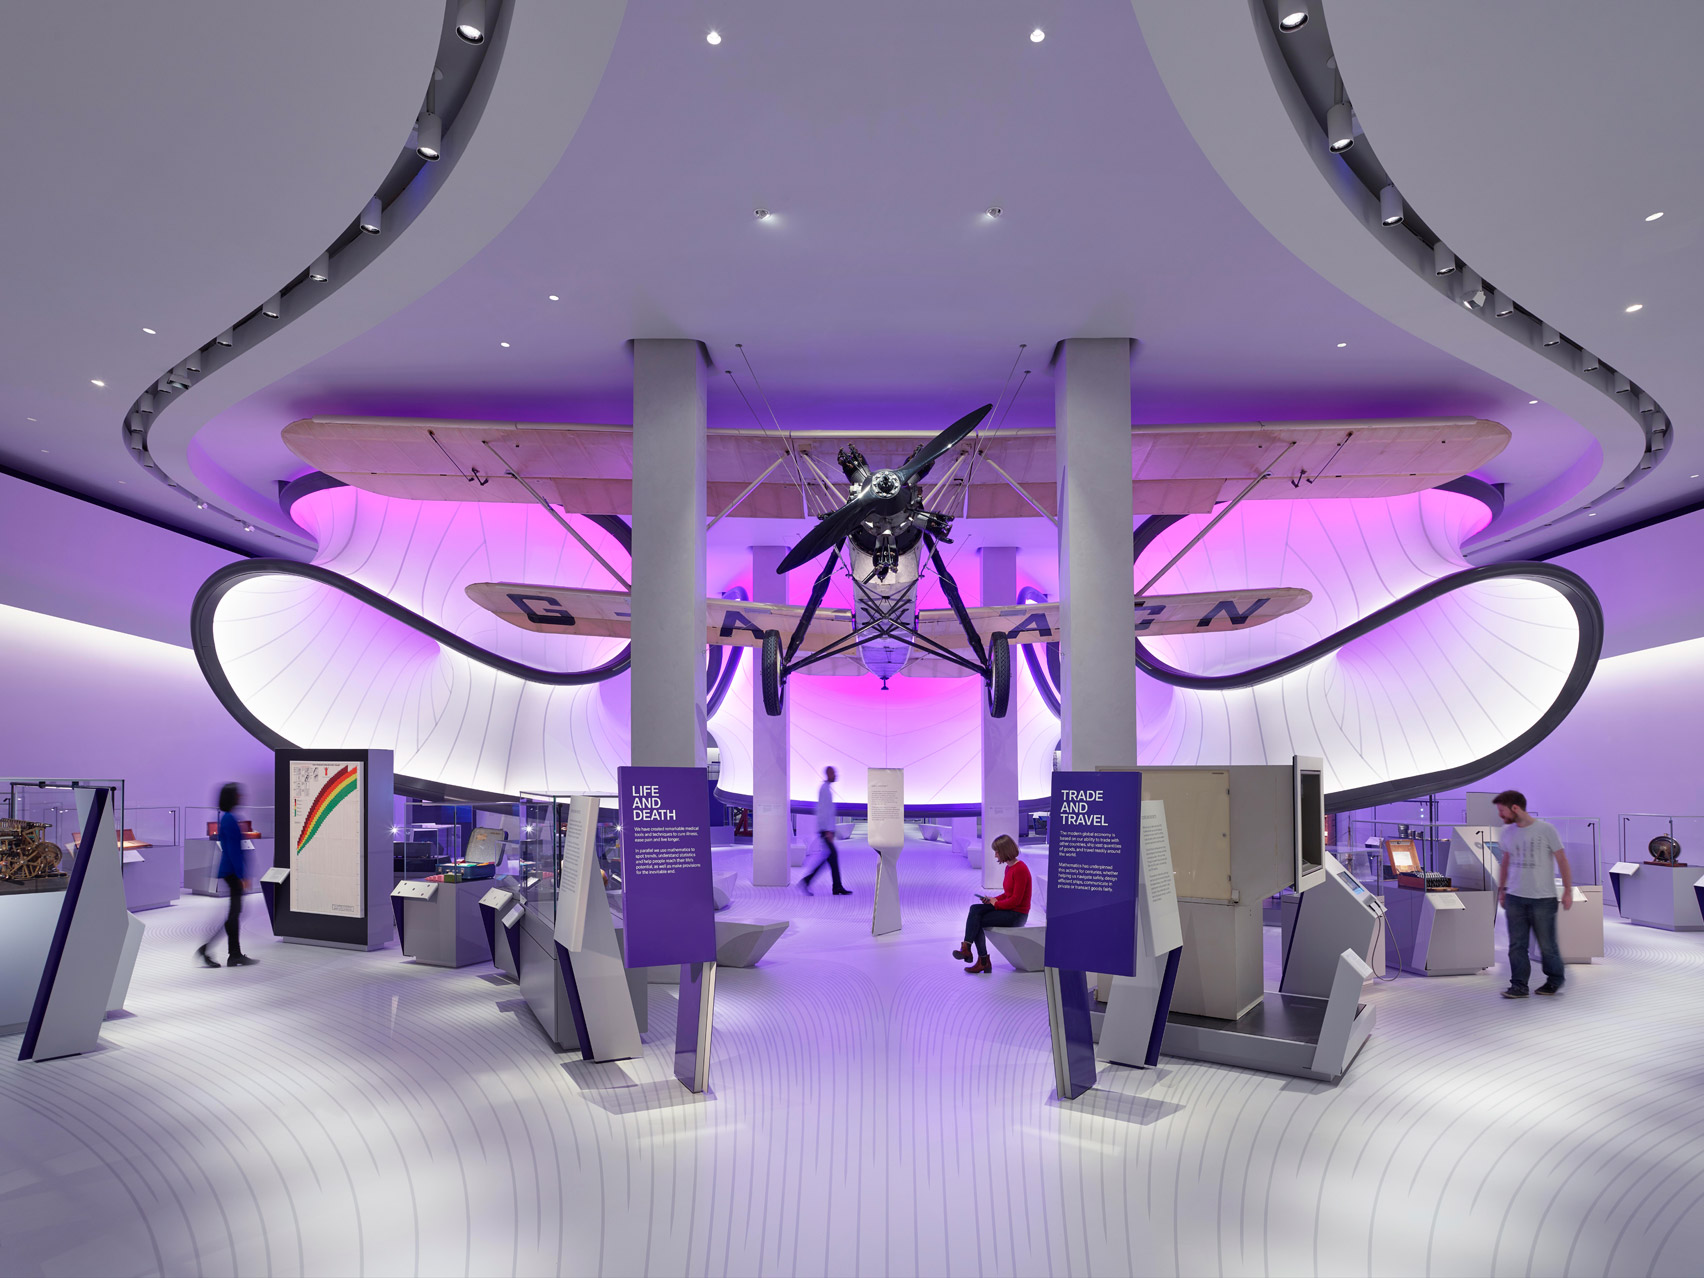 Science Museum, Winton Gallery by Zaha Hadid